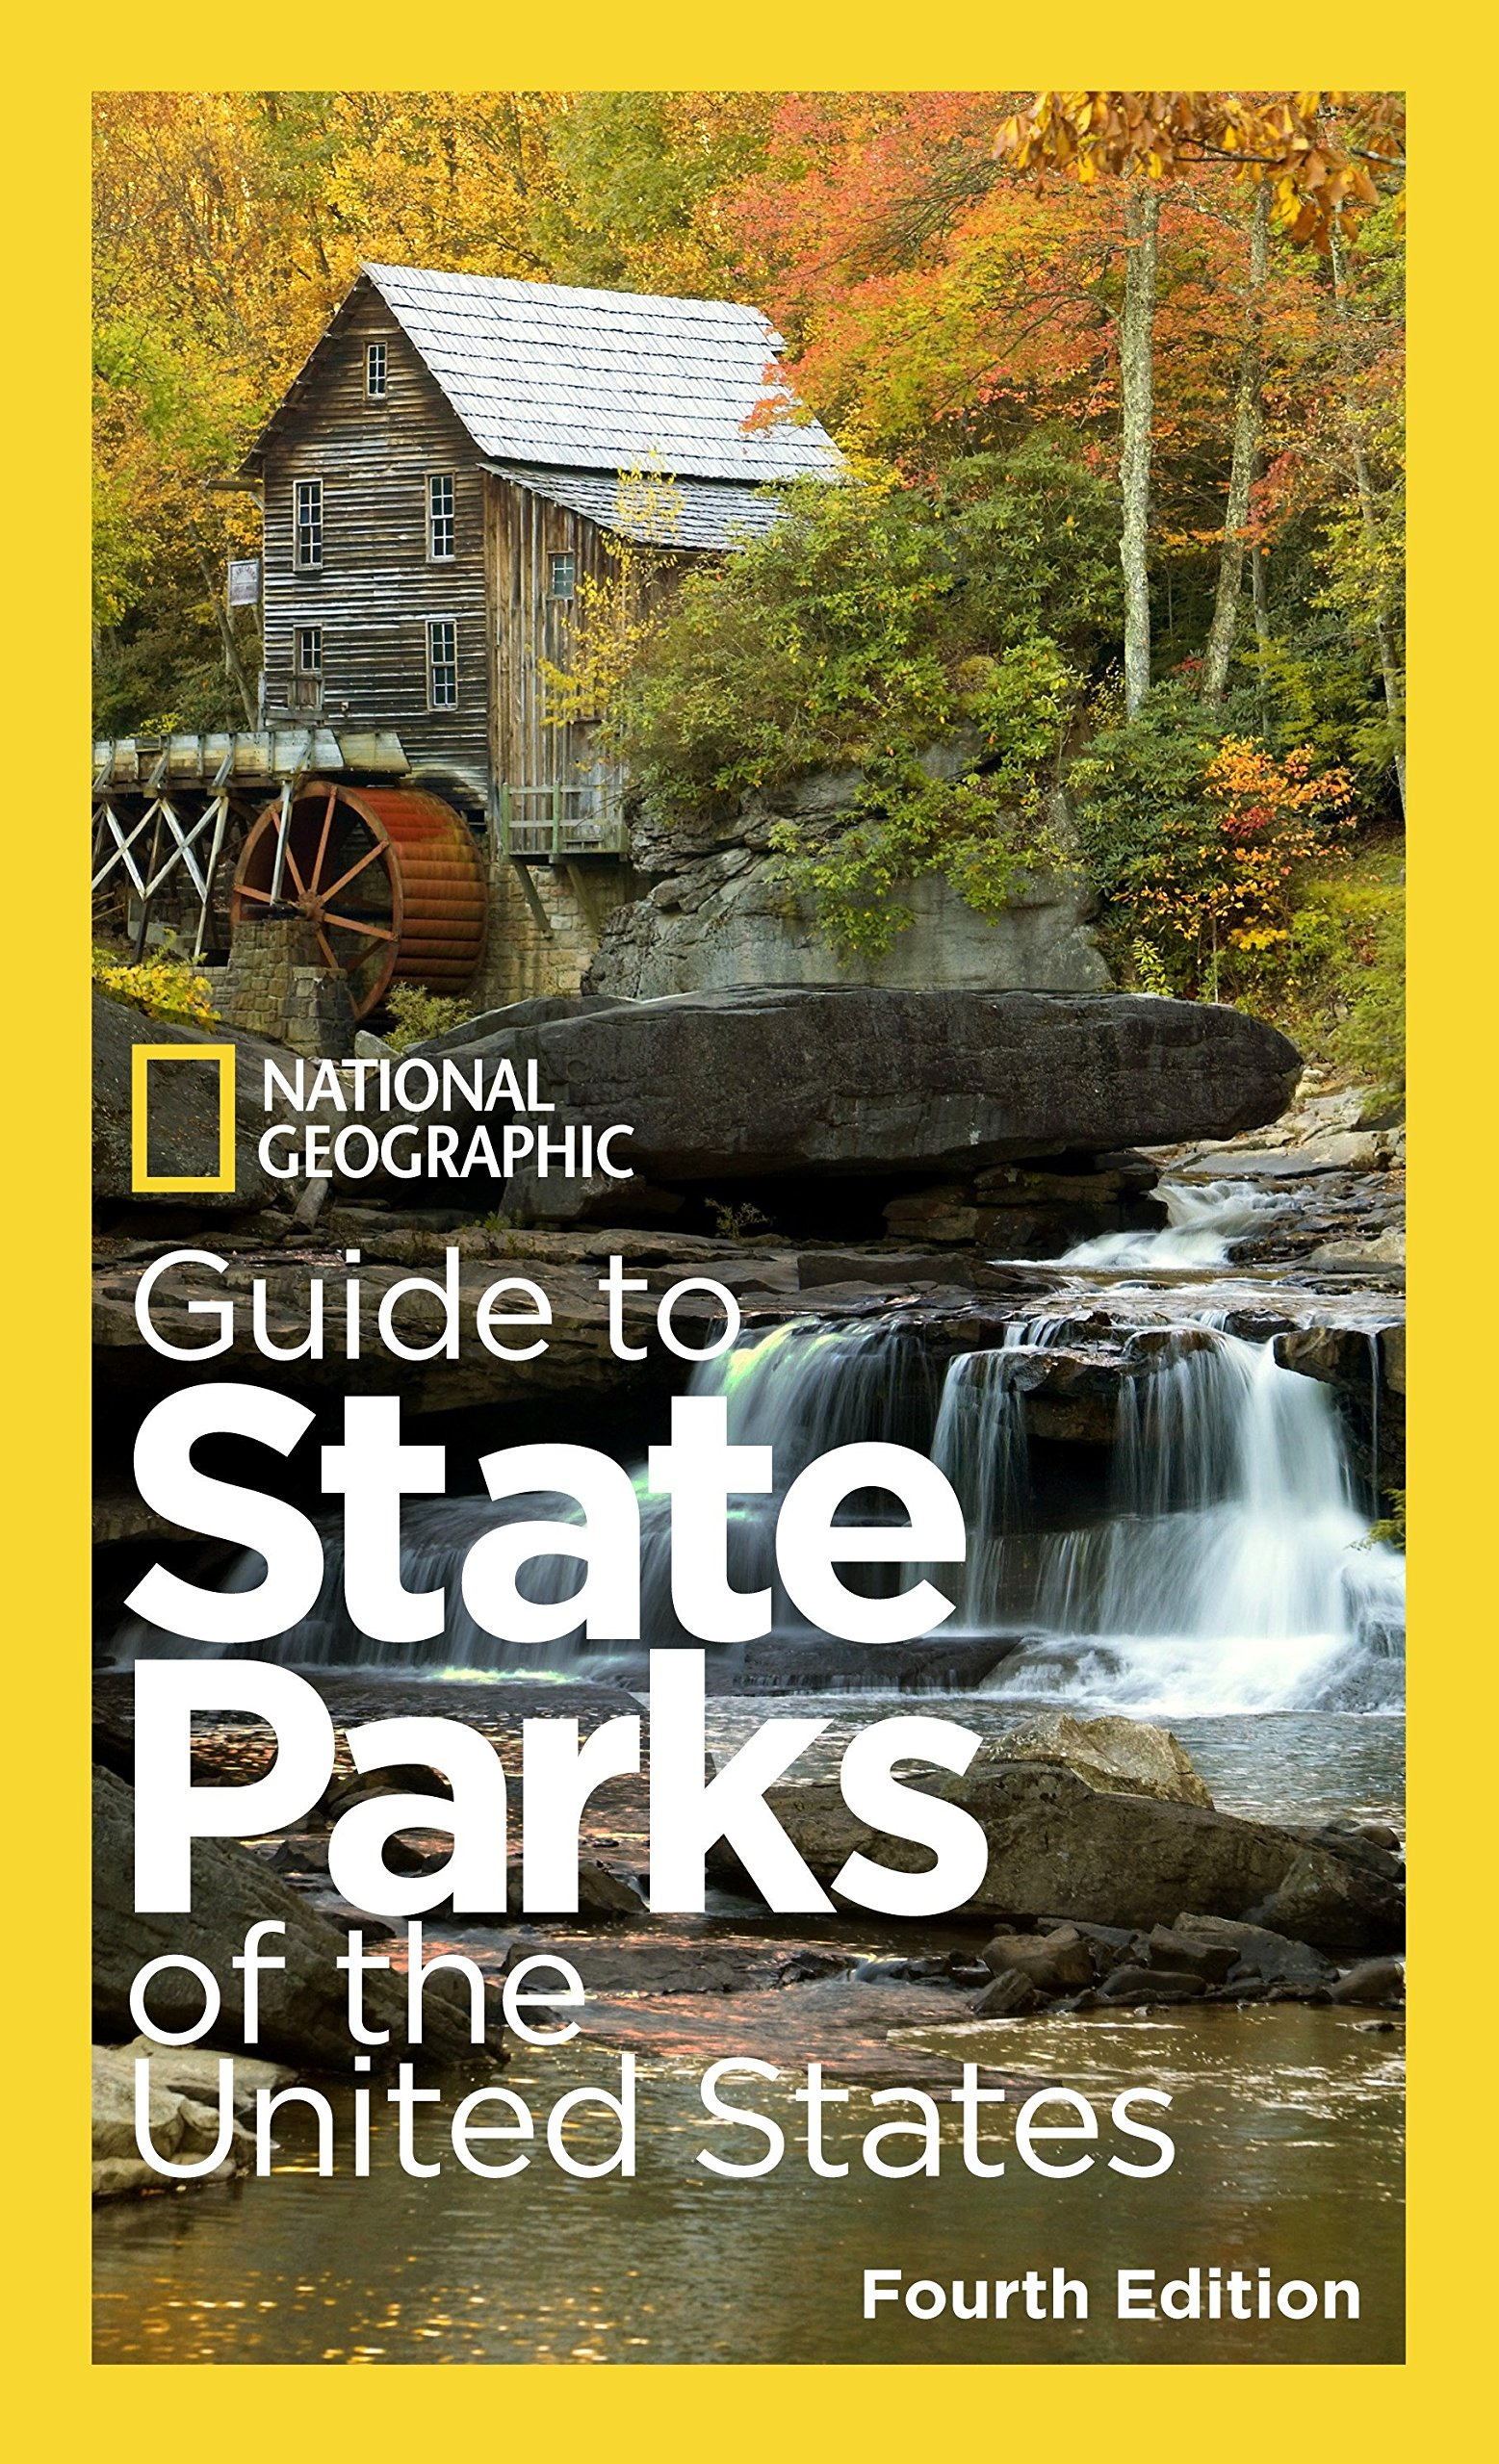 National Geographic Guide To State Parks Of The United States 4th Edition 9781426208898 Amazon Books